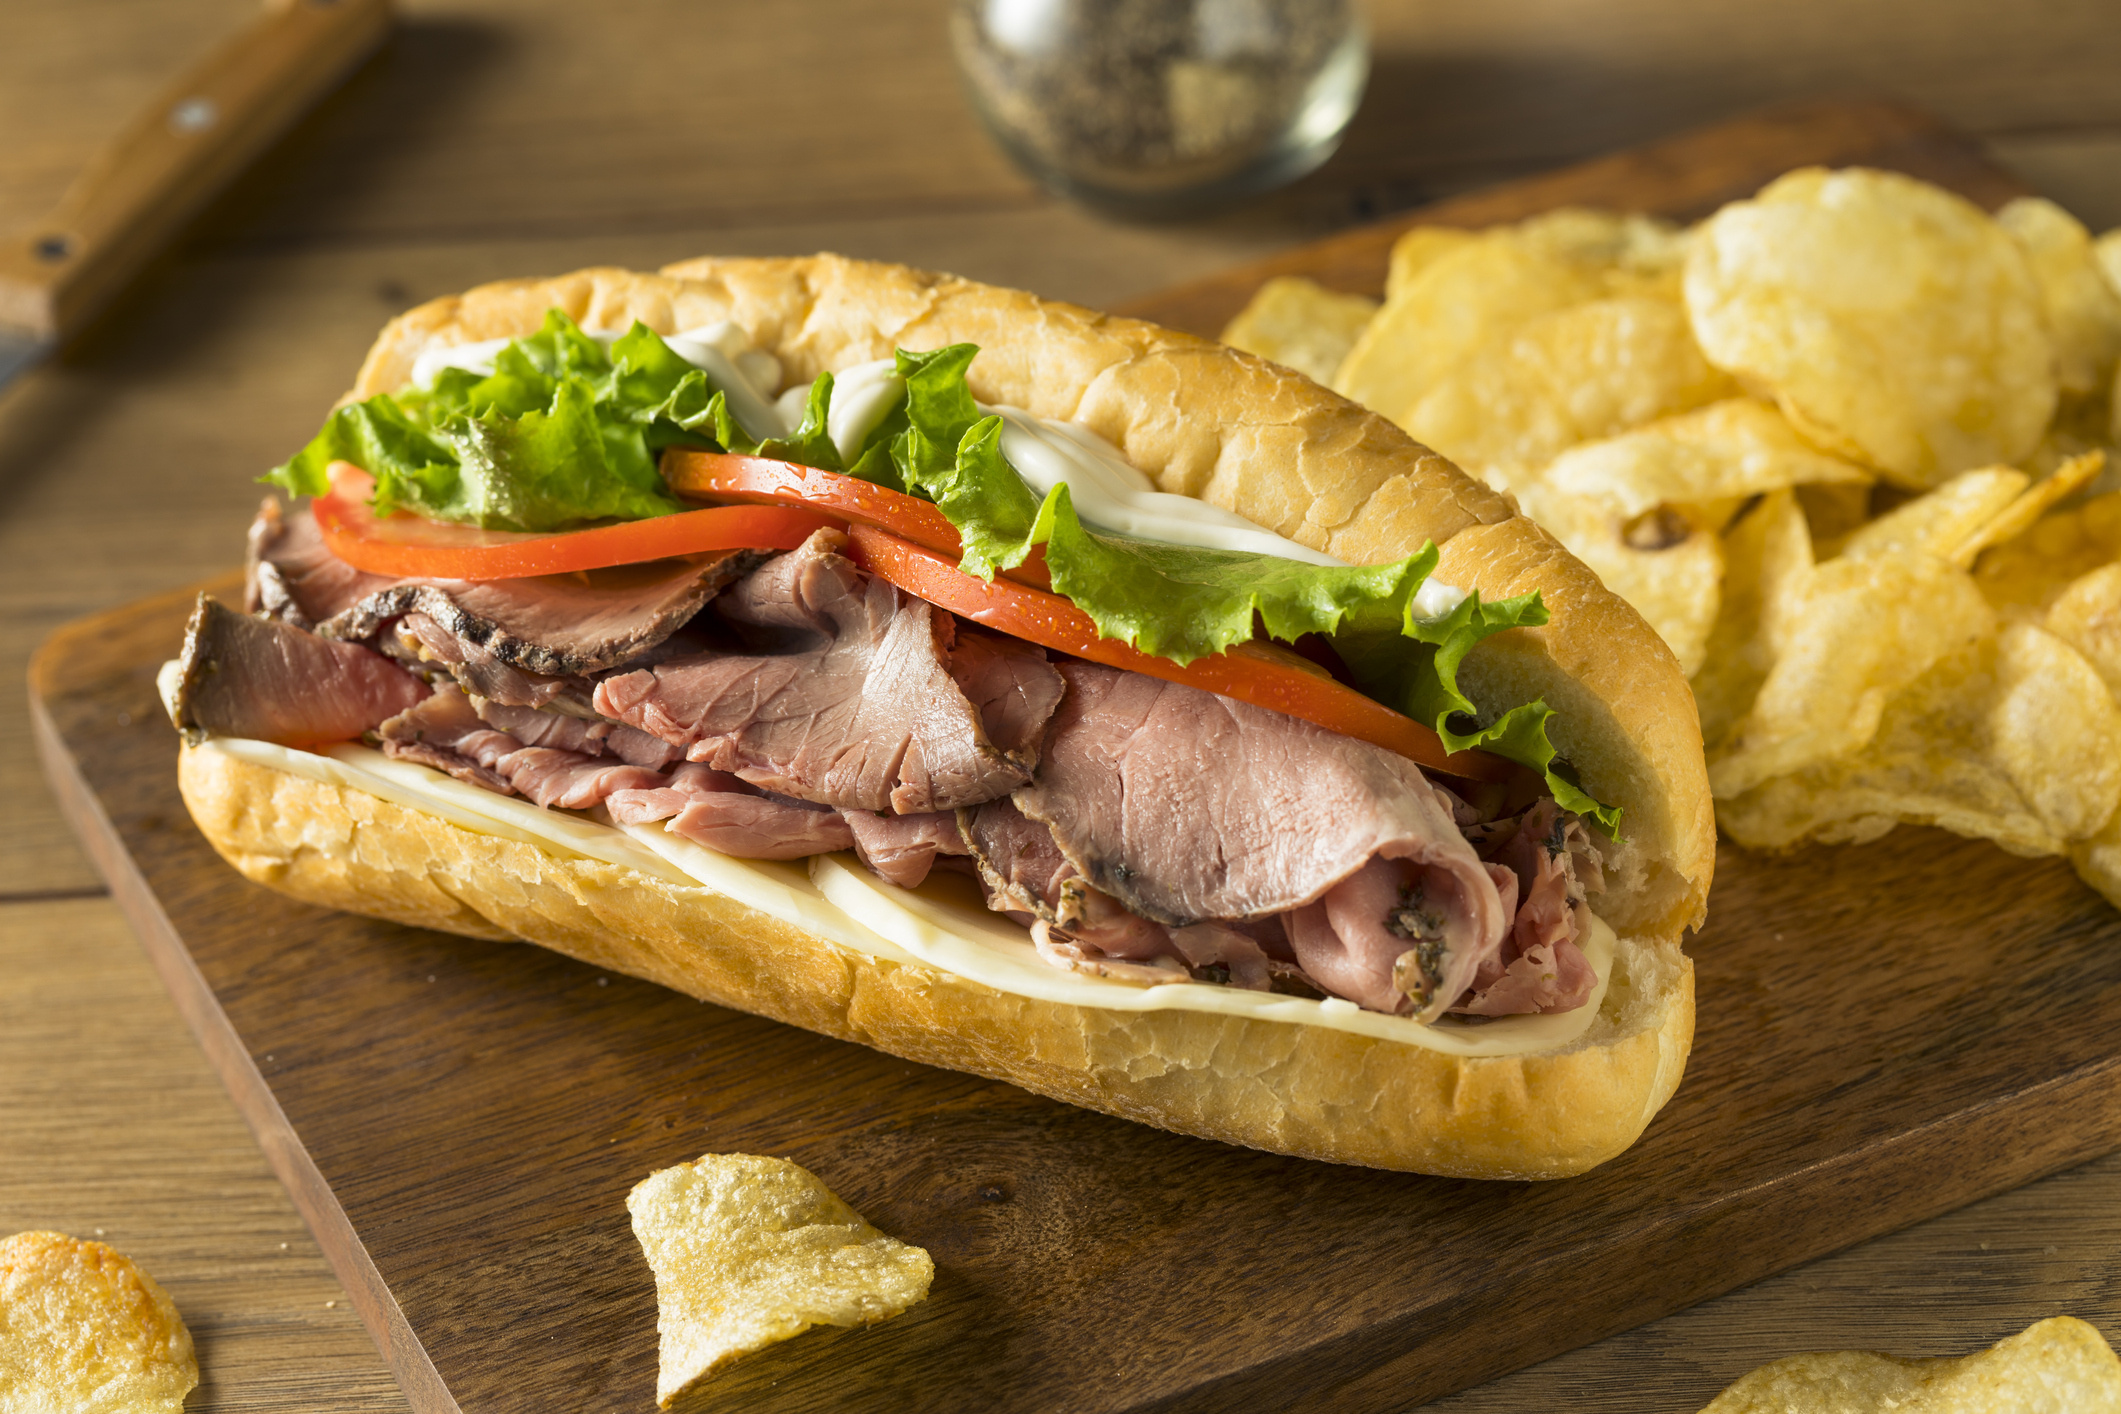 New Price for Top Rated National Sandwich Franchise In Philly